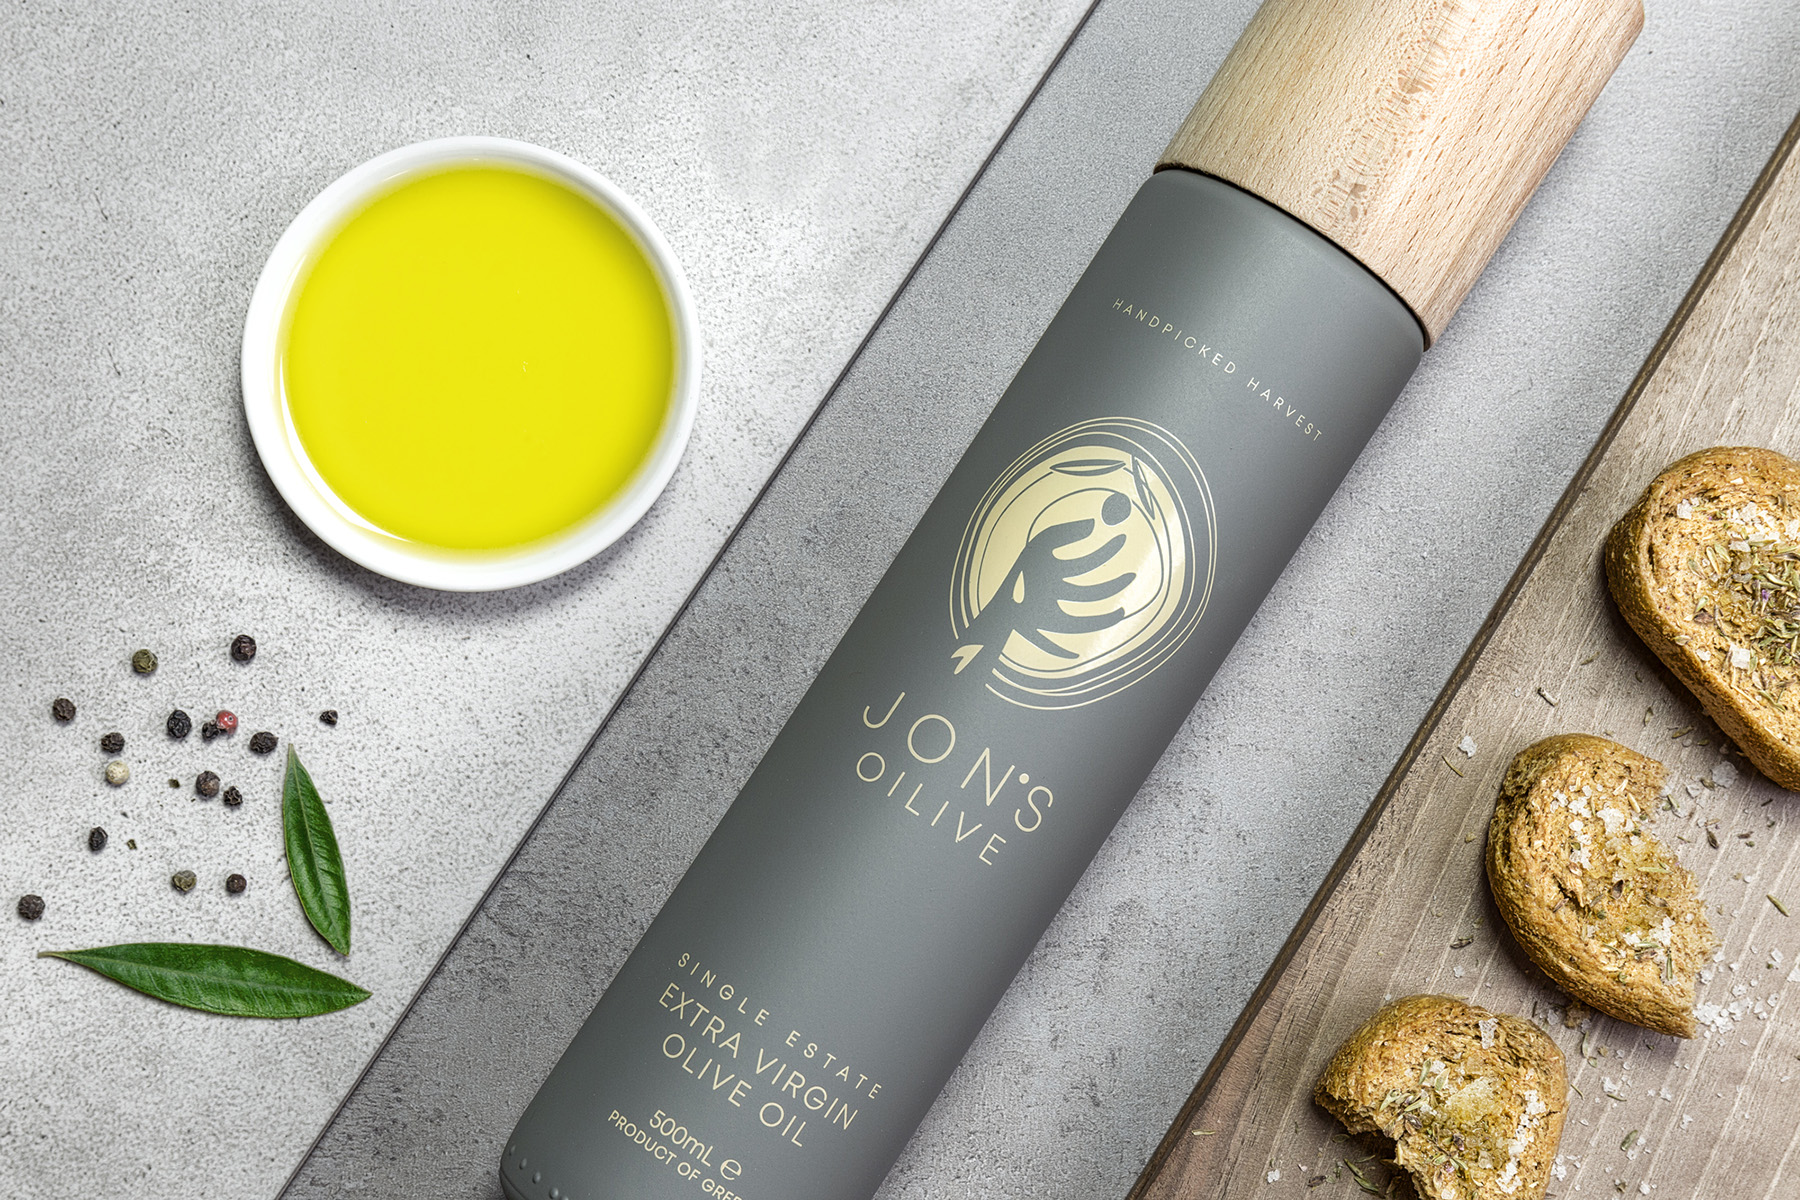 Jon's Oilive Olive Oil Packaging Design / World Brand Design Society